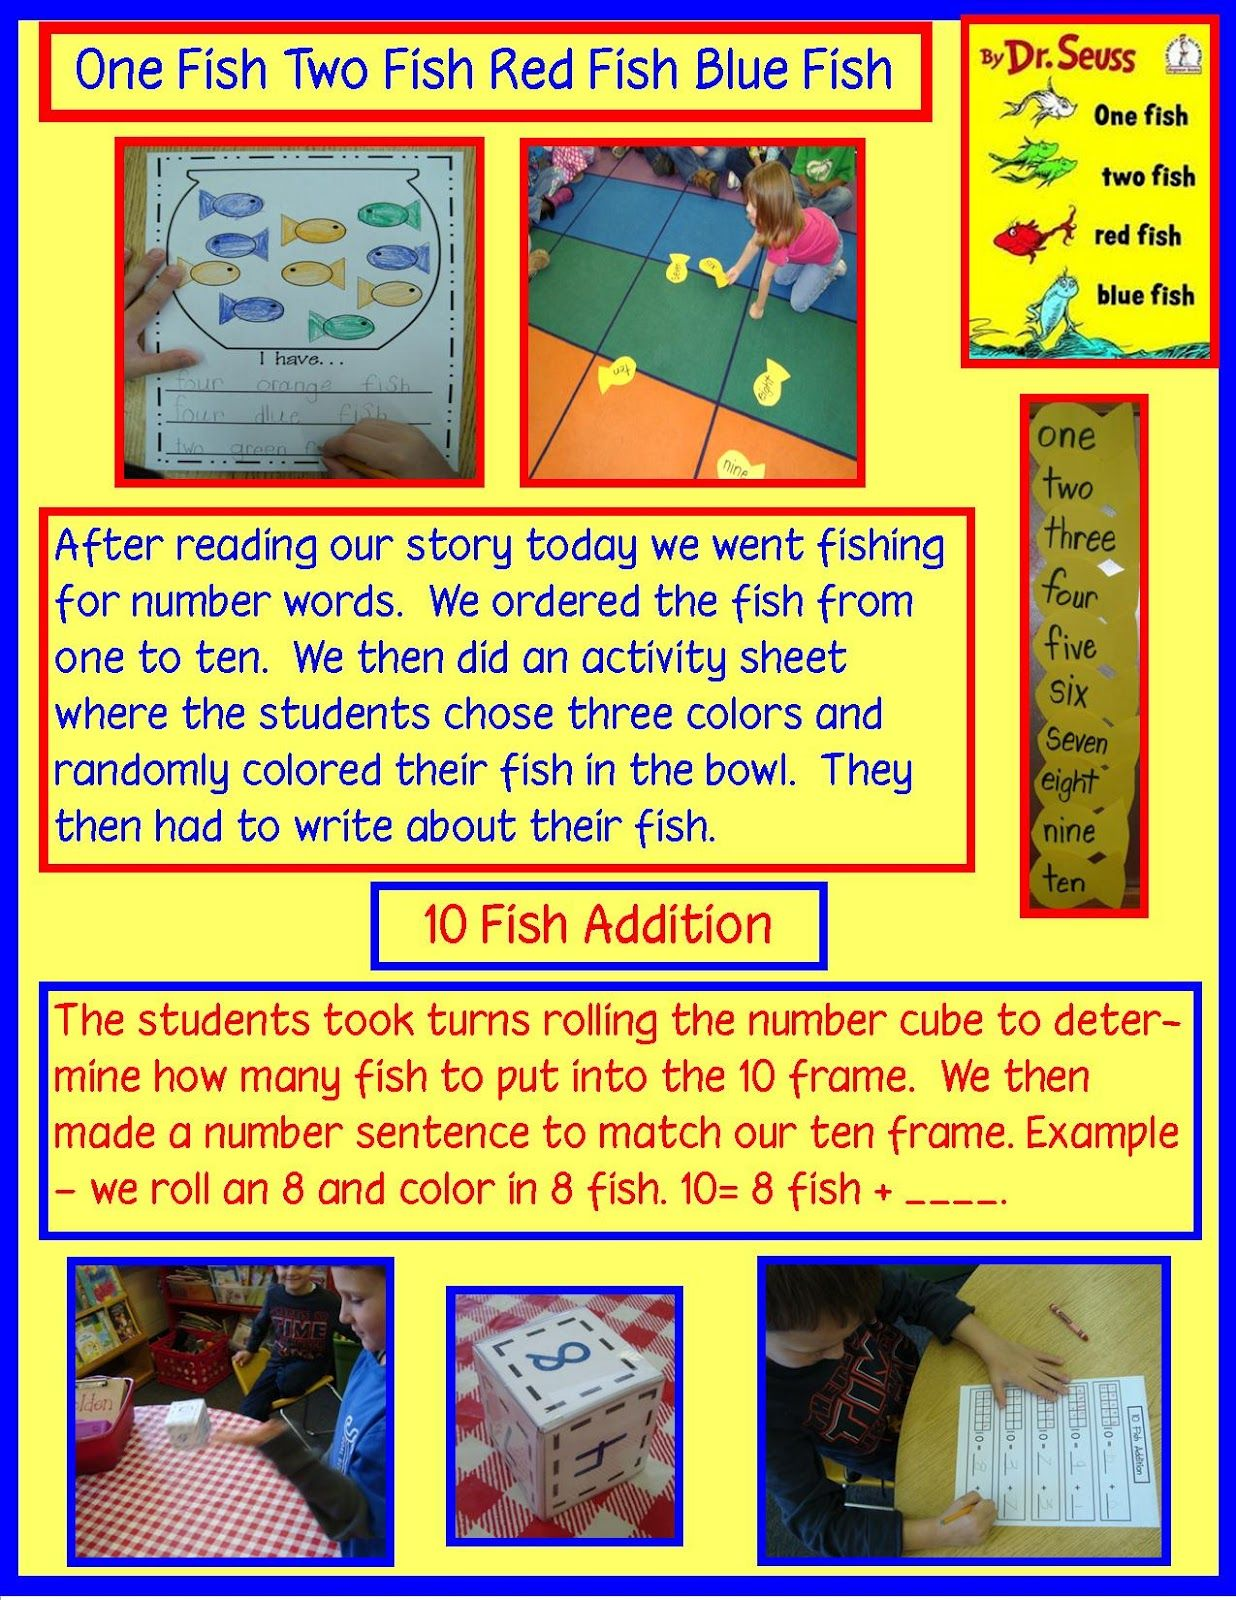 Golden Gang Kindergarten Dr Seuss Use Book One Fish Two Fish Red Fish Blue Fish By Dr